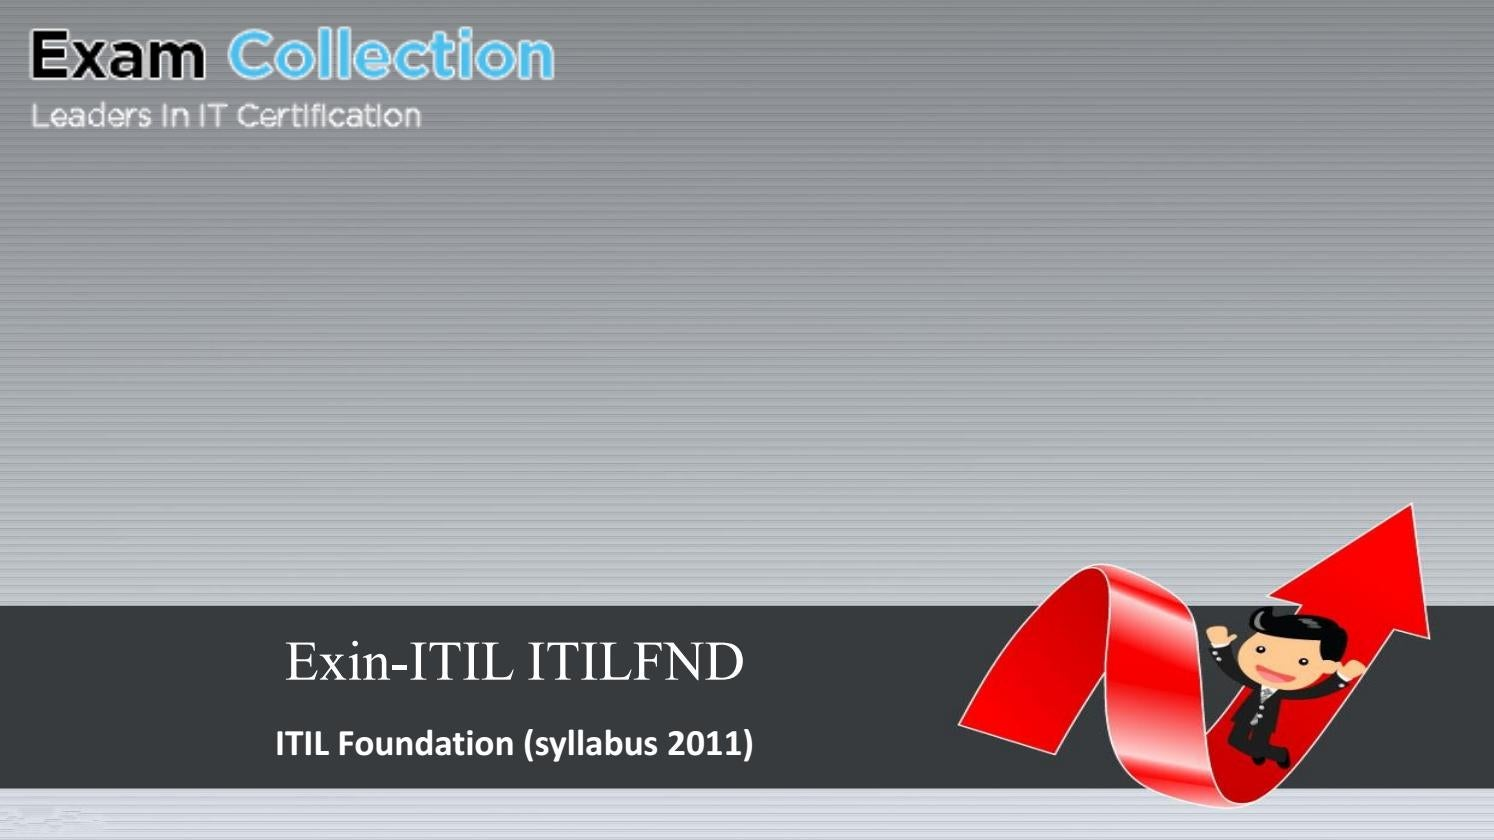 Examcollection Exin Itil Itilfnd Exam Vce Pdf Test Engine By